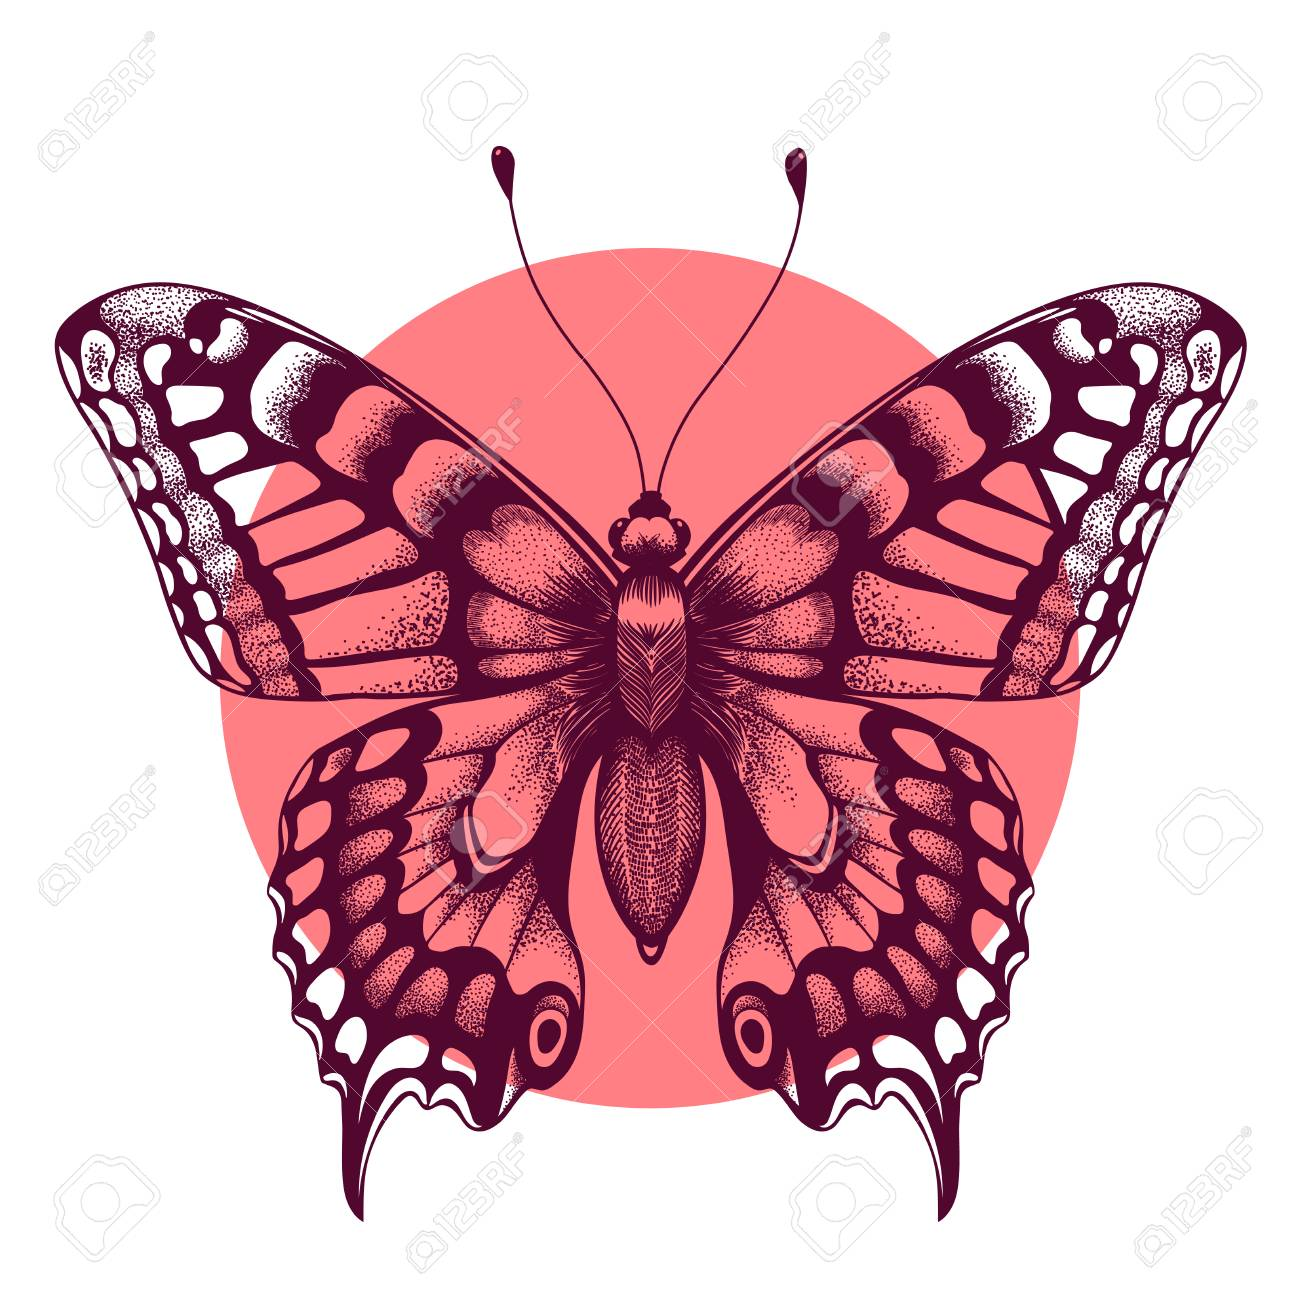 646a3fa198d81 Vector - Vector illustration of butterfly in circle for design and  decoration. Beautiful tattoo for your forearm. Symbol of immortal soul.  Element Air